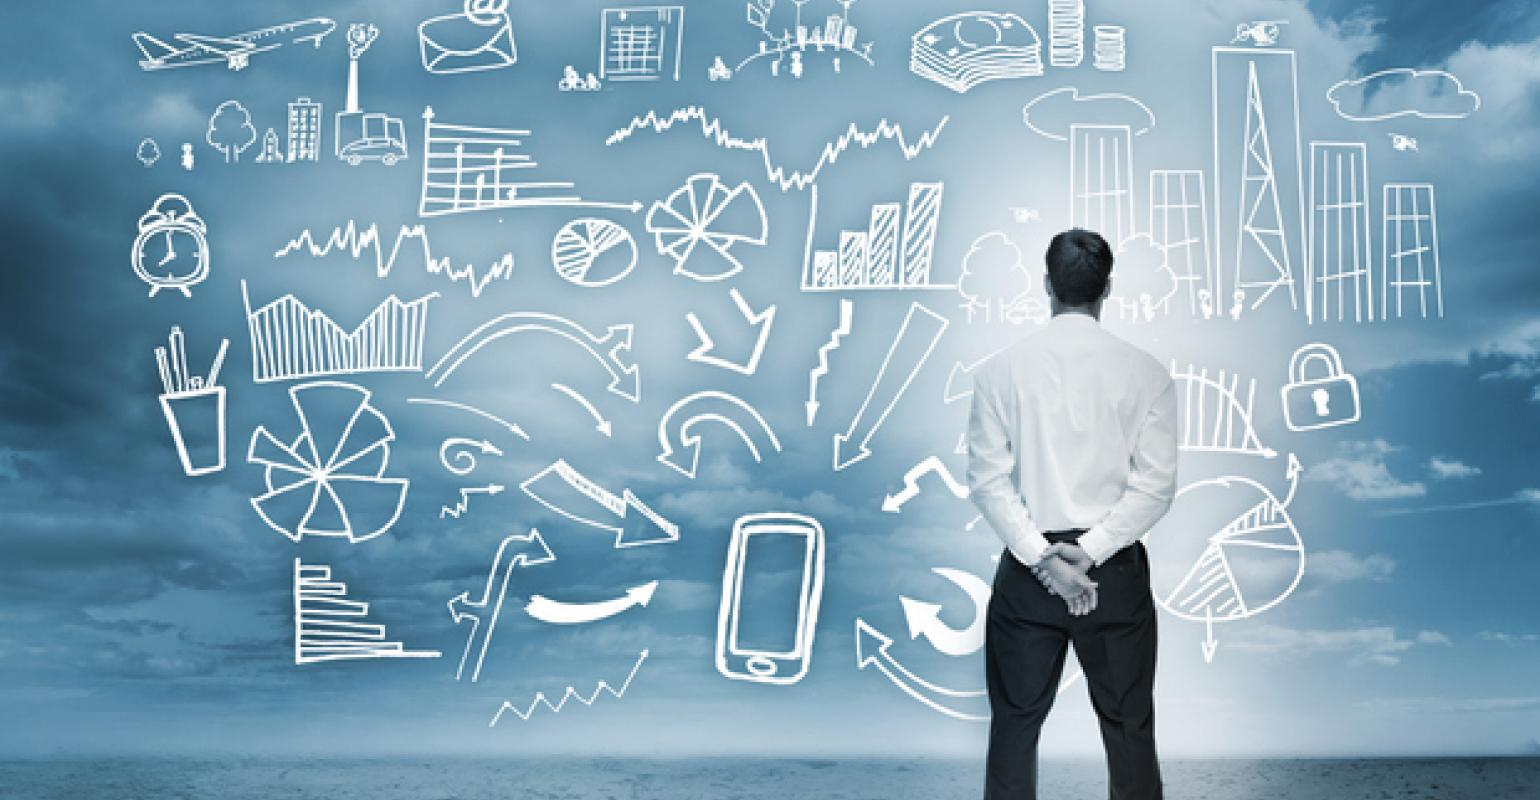 Big Data Role in Decision making in addressing organizational problems